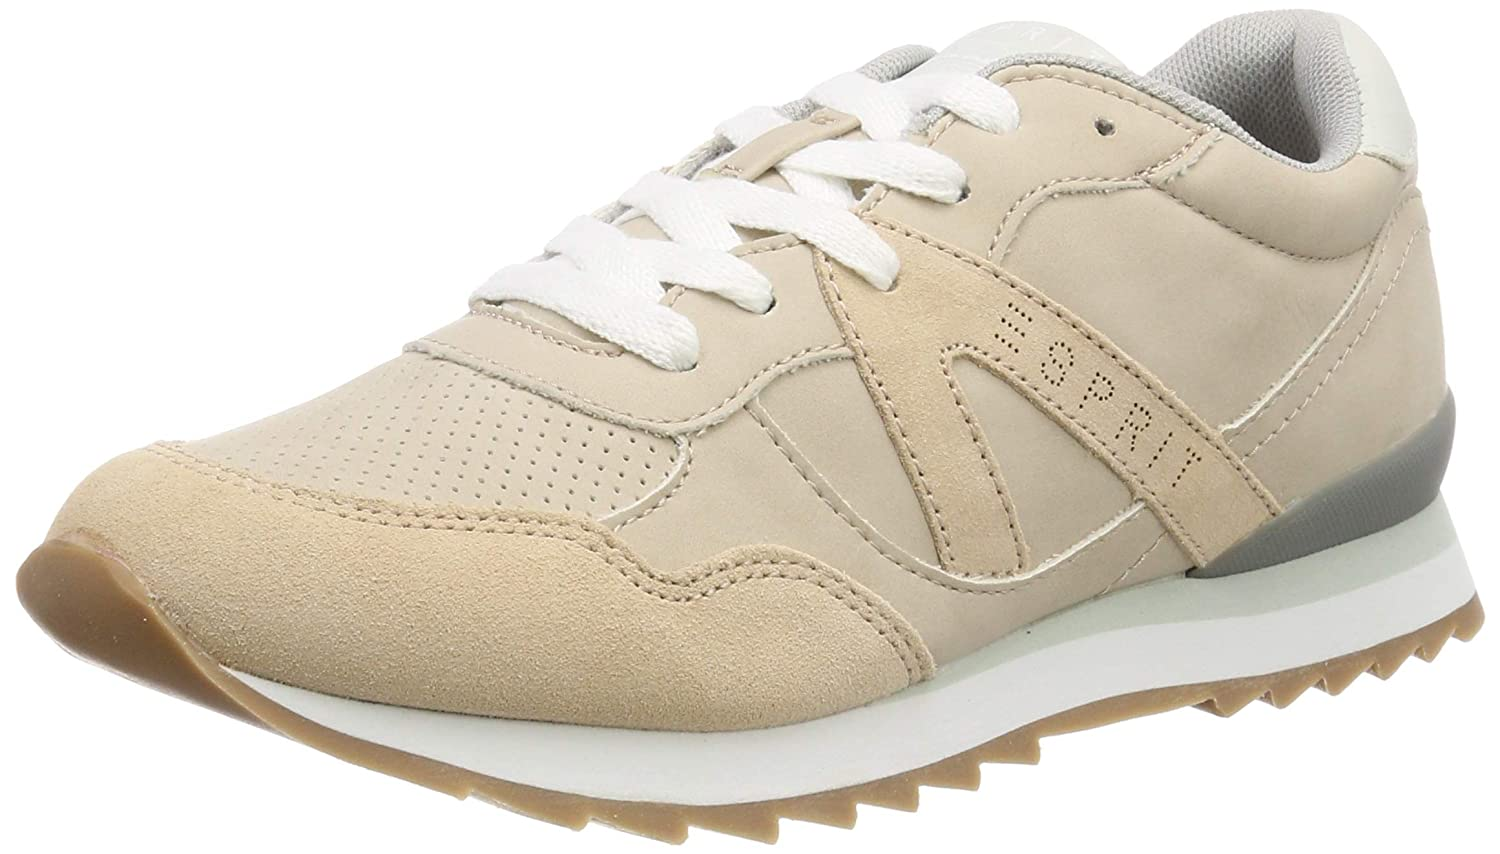 Beige (Skin Beige 280) ESPRIT Women's Astro Lu Low-Top Sneakers